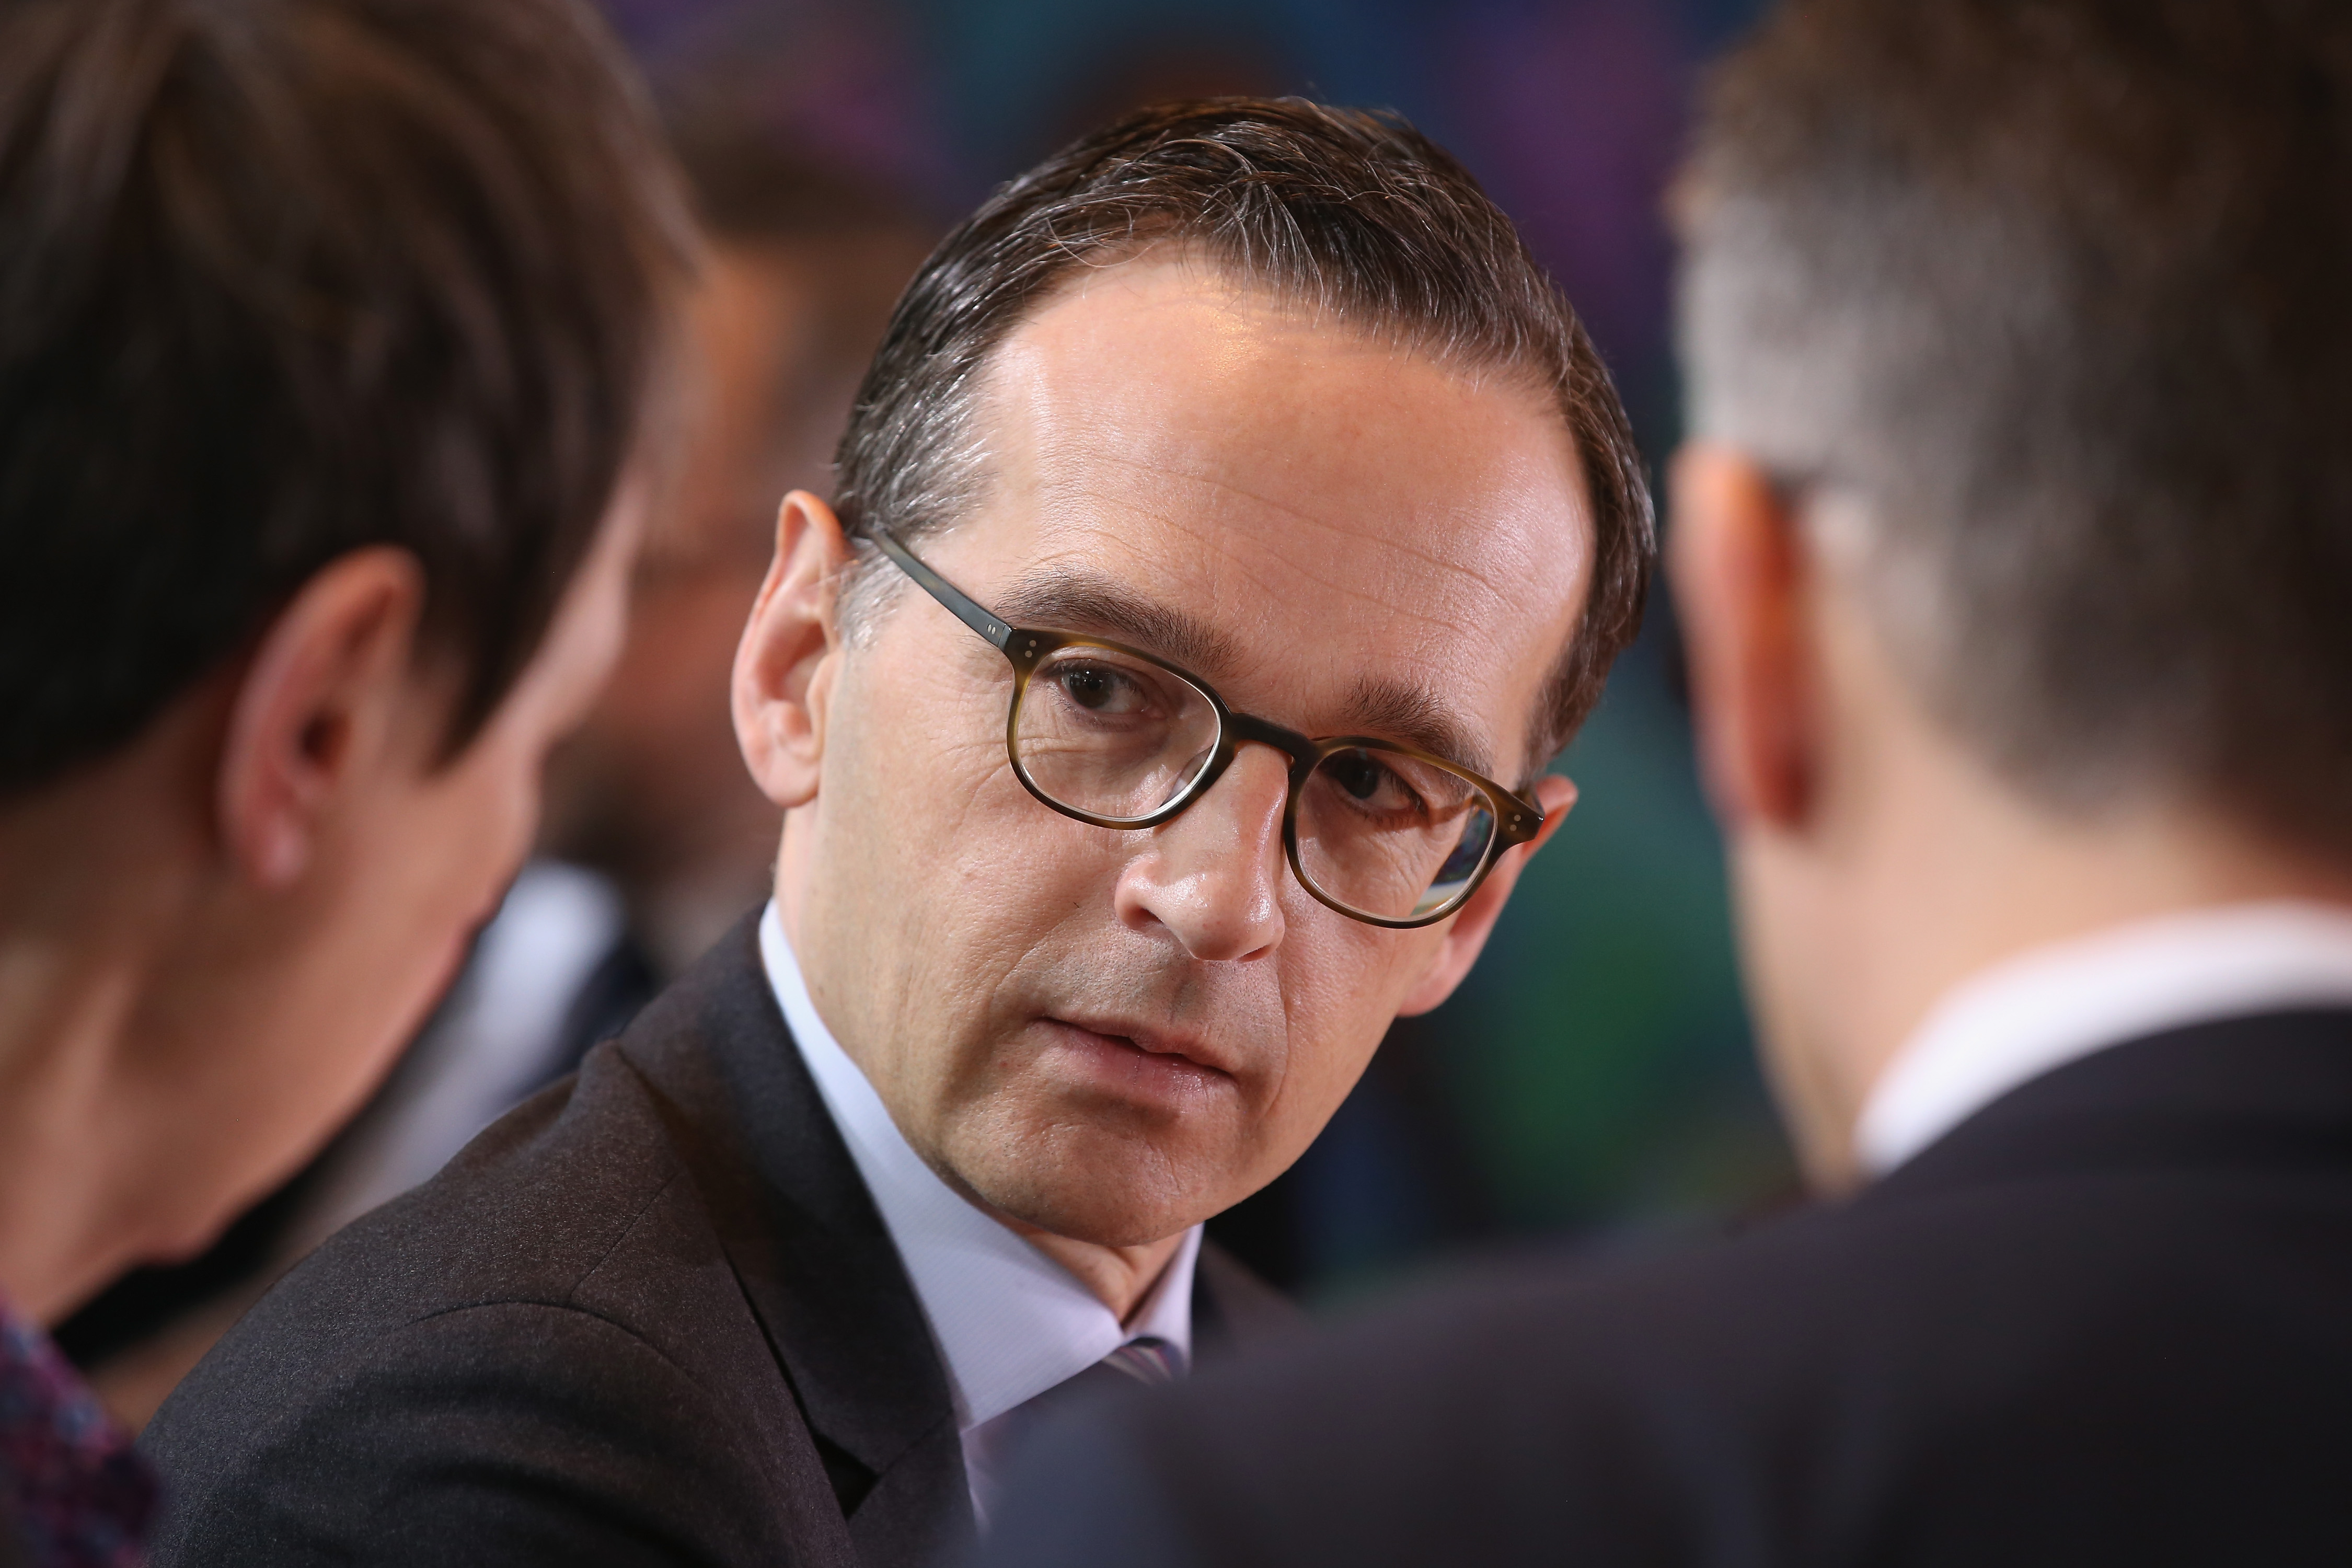 German Justice Minister Heiko Maas arrives for a weekly government cabinet meeting in Germany.